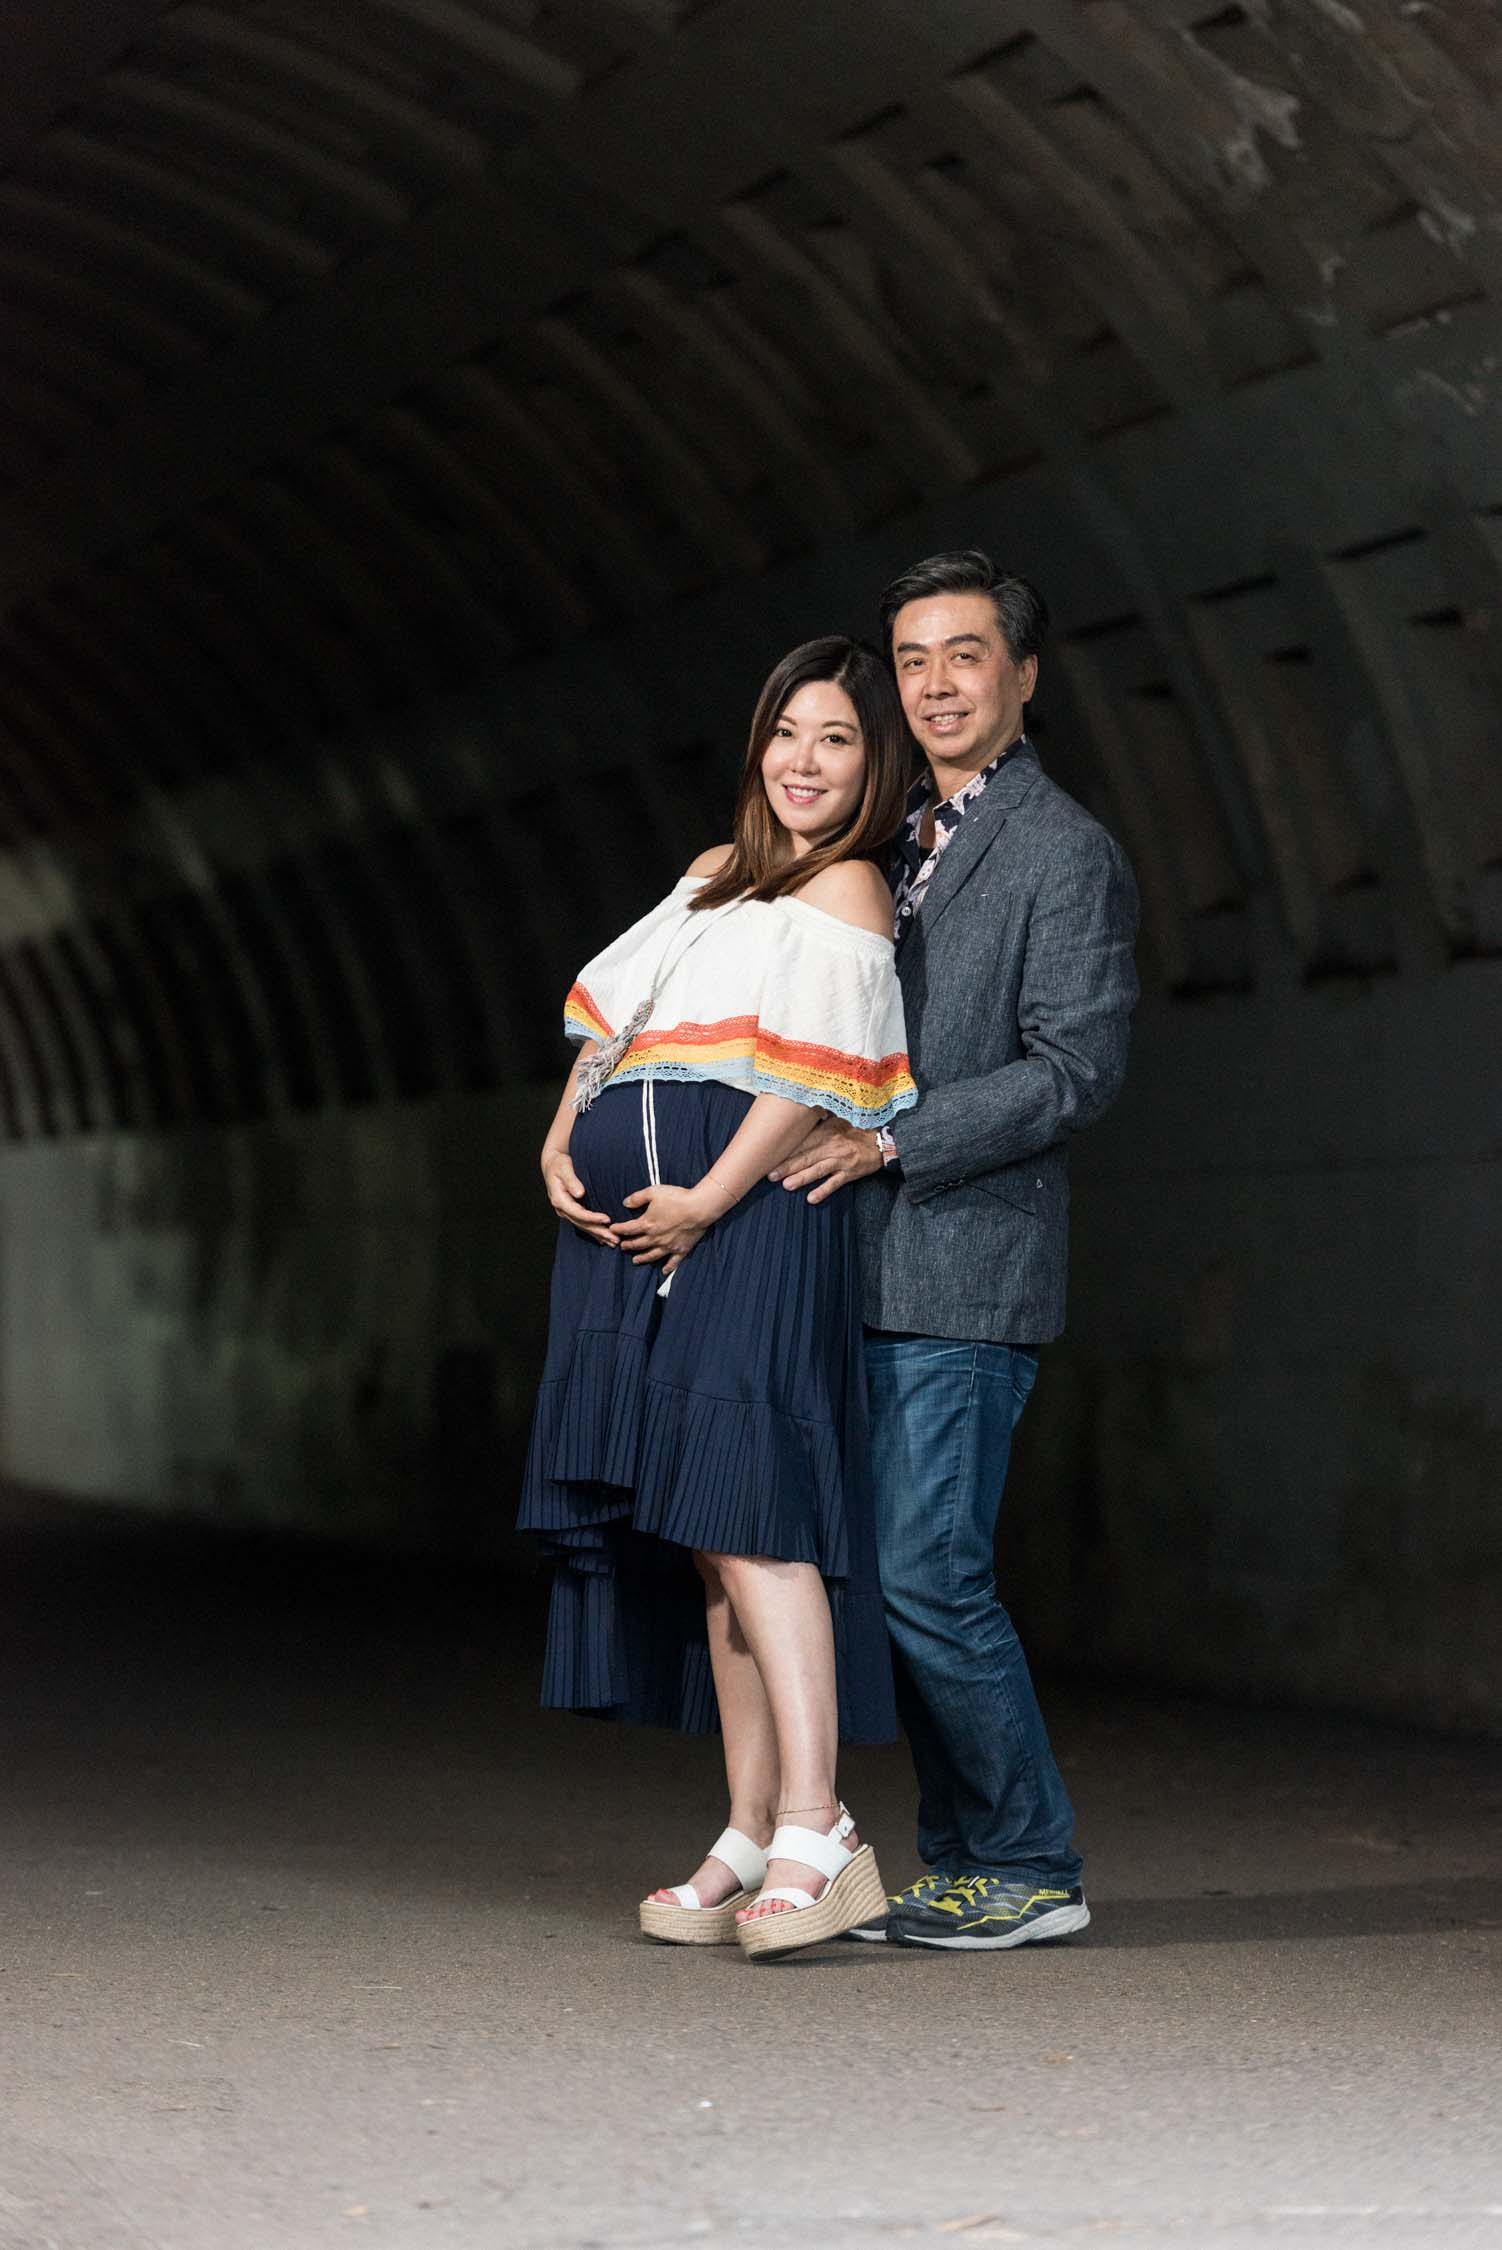 10_goldengatepark_maternity_photographer.jpg